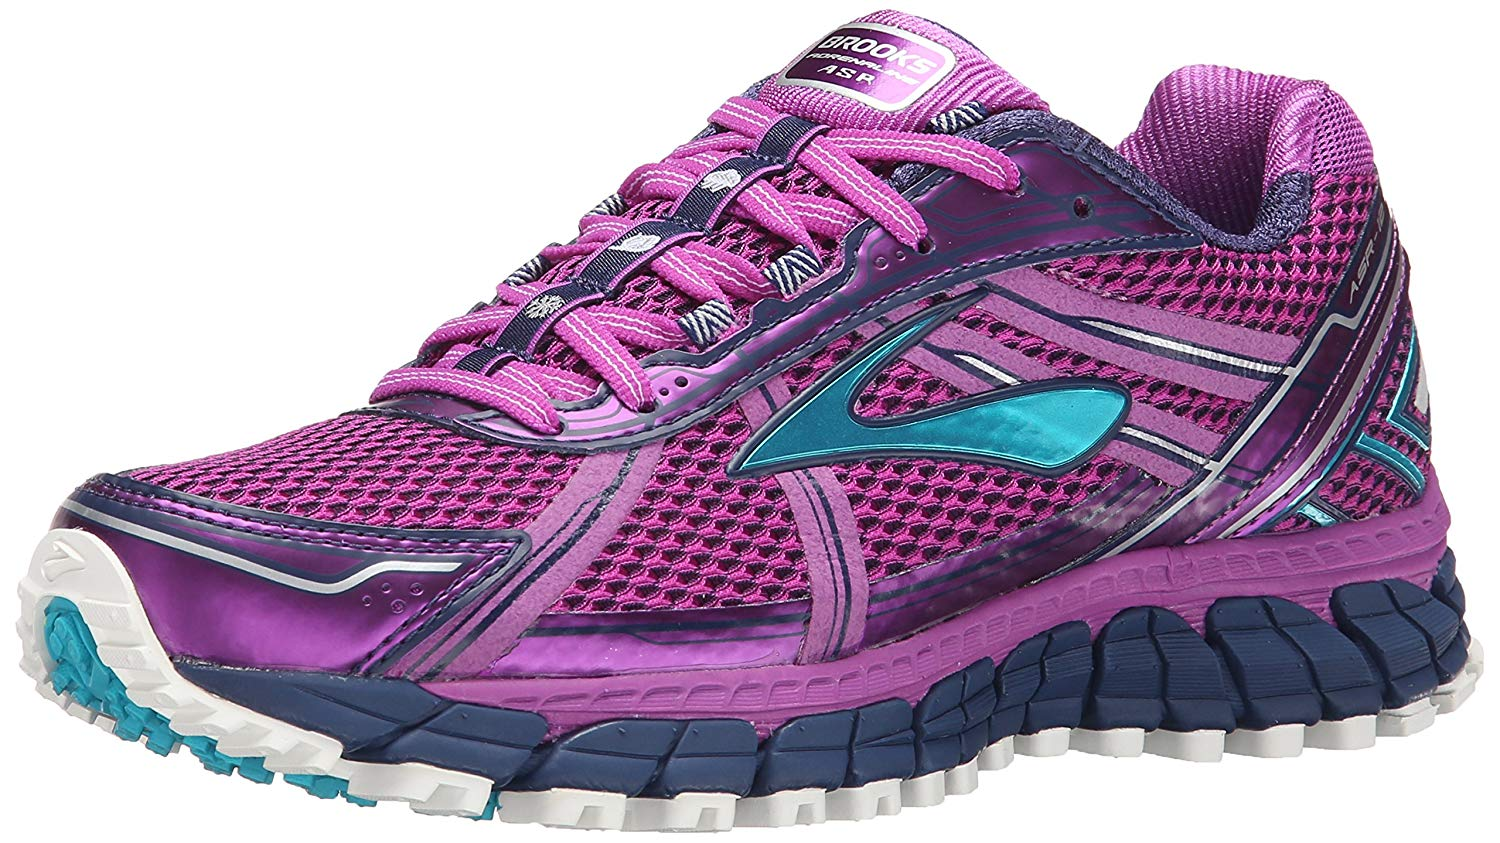 088f57ee930 Get Quotations · Brooks Women s Adrenaline ASR 12